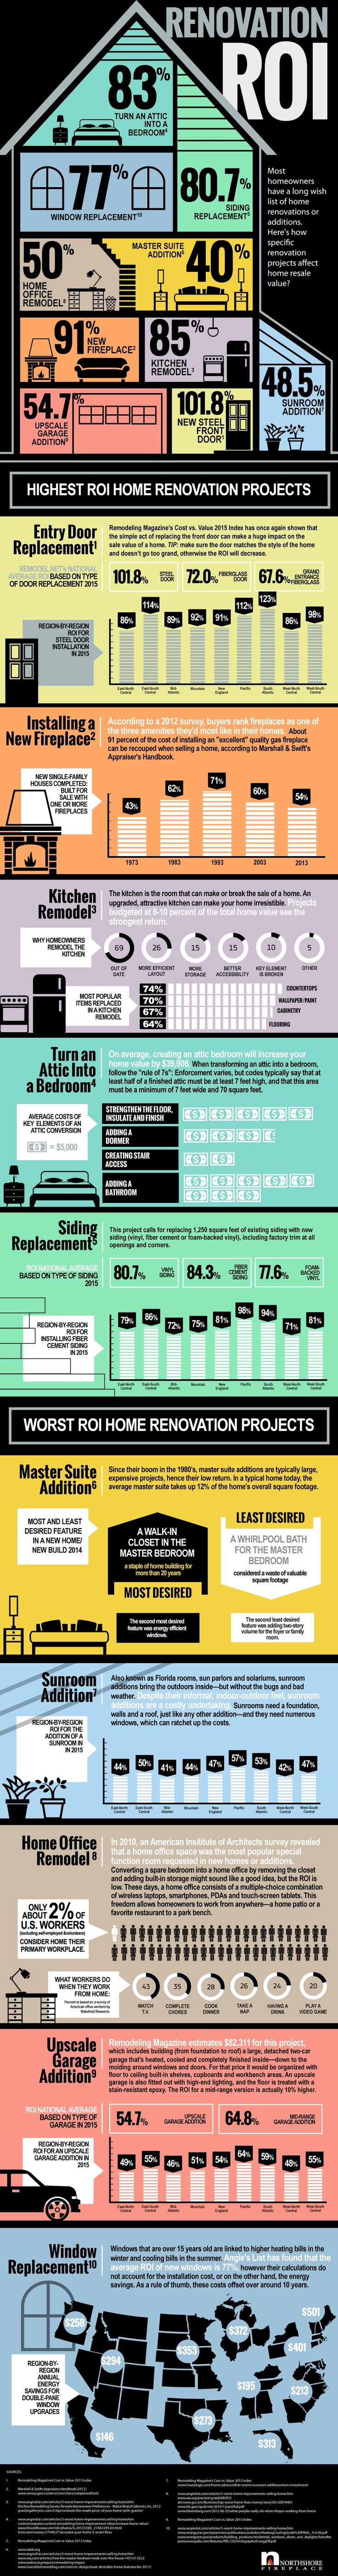 If you're a homeowner, you're probably always thinking of ways you can increase your home's resale value. Here are the best additions you can make to your home if you want to increase your return on investment.